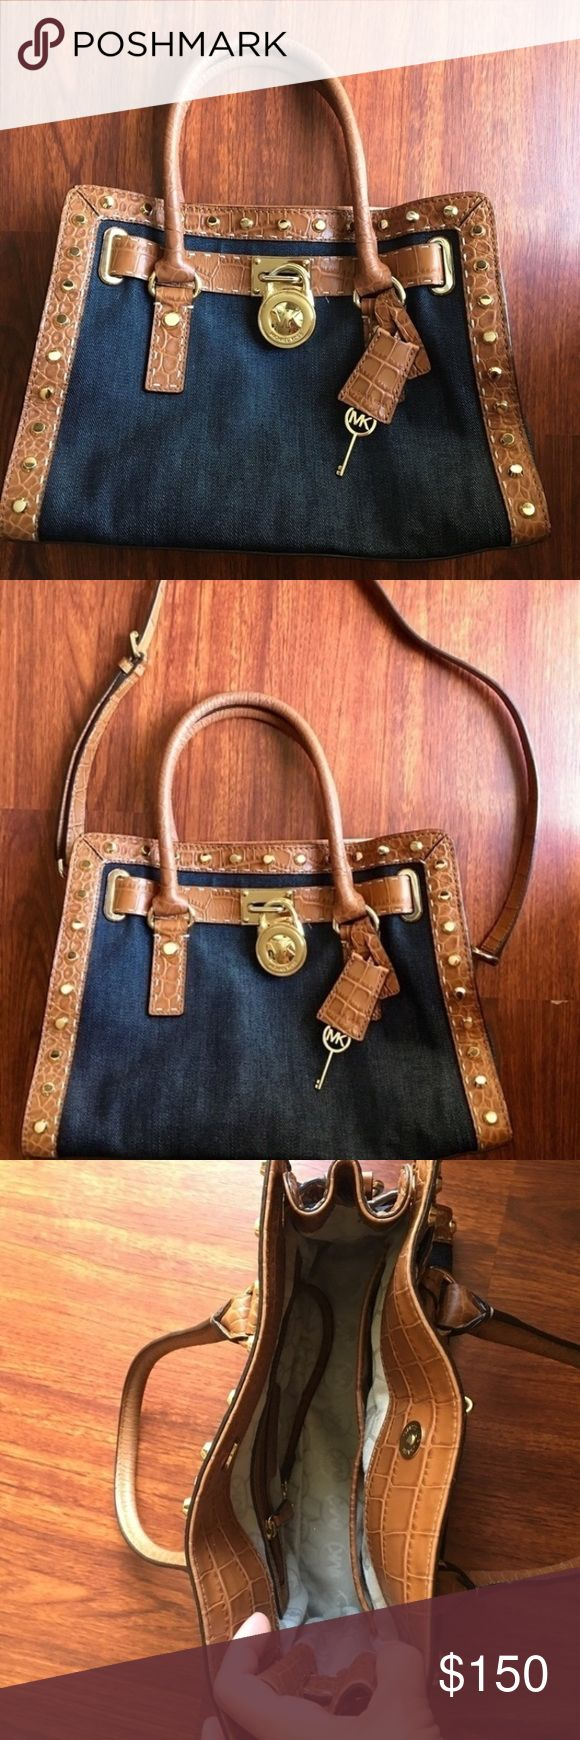 Michael Kors Hamilton In good condition Michael Kors Hamilton includes the strap. Michael Kors Bags Crossbody Bags